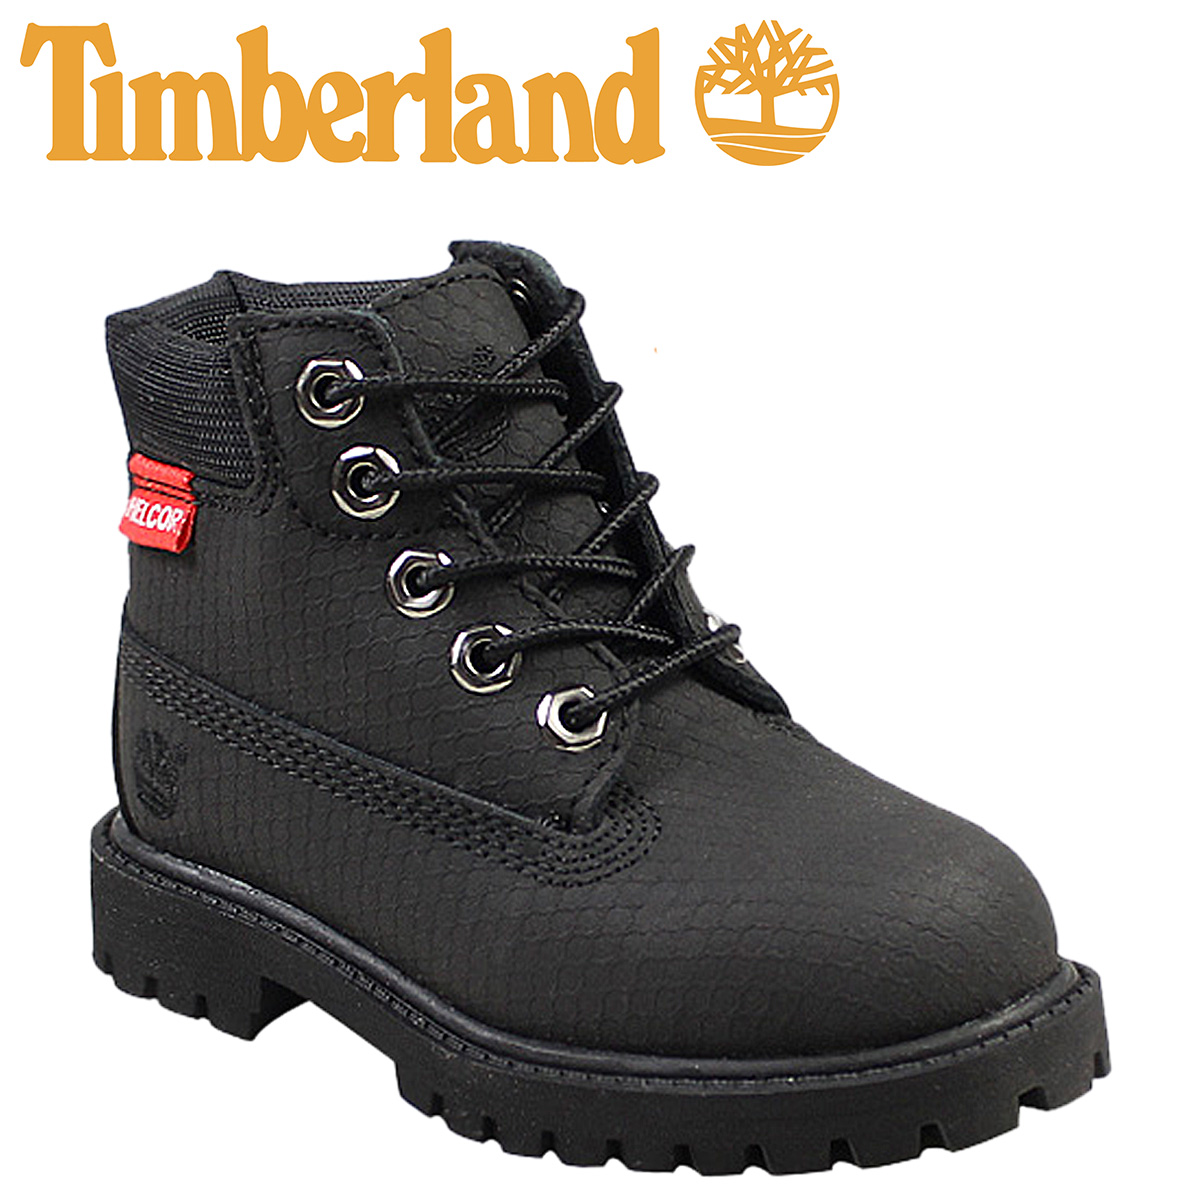 6 inches of Timberland Timberland baby kids premium waterproof boots 6 INCH PREMIUM WATERPROOF HELCOR BABY TODDLERS BOOTS leather youth child 6587R